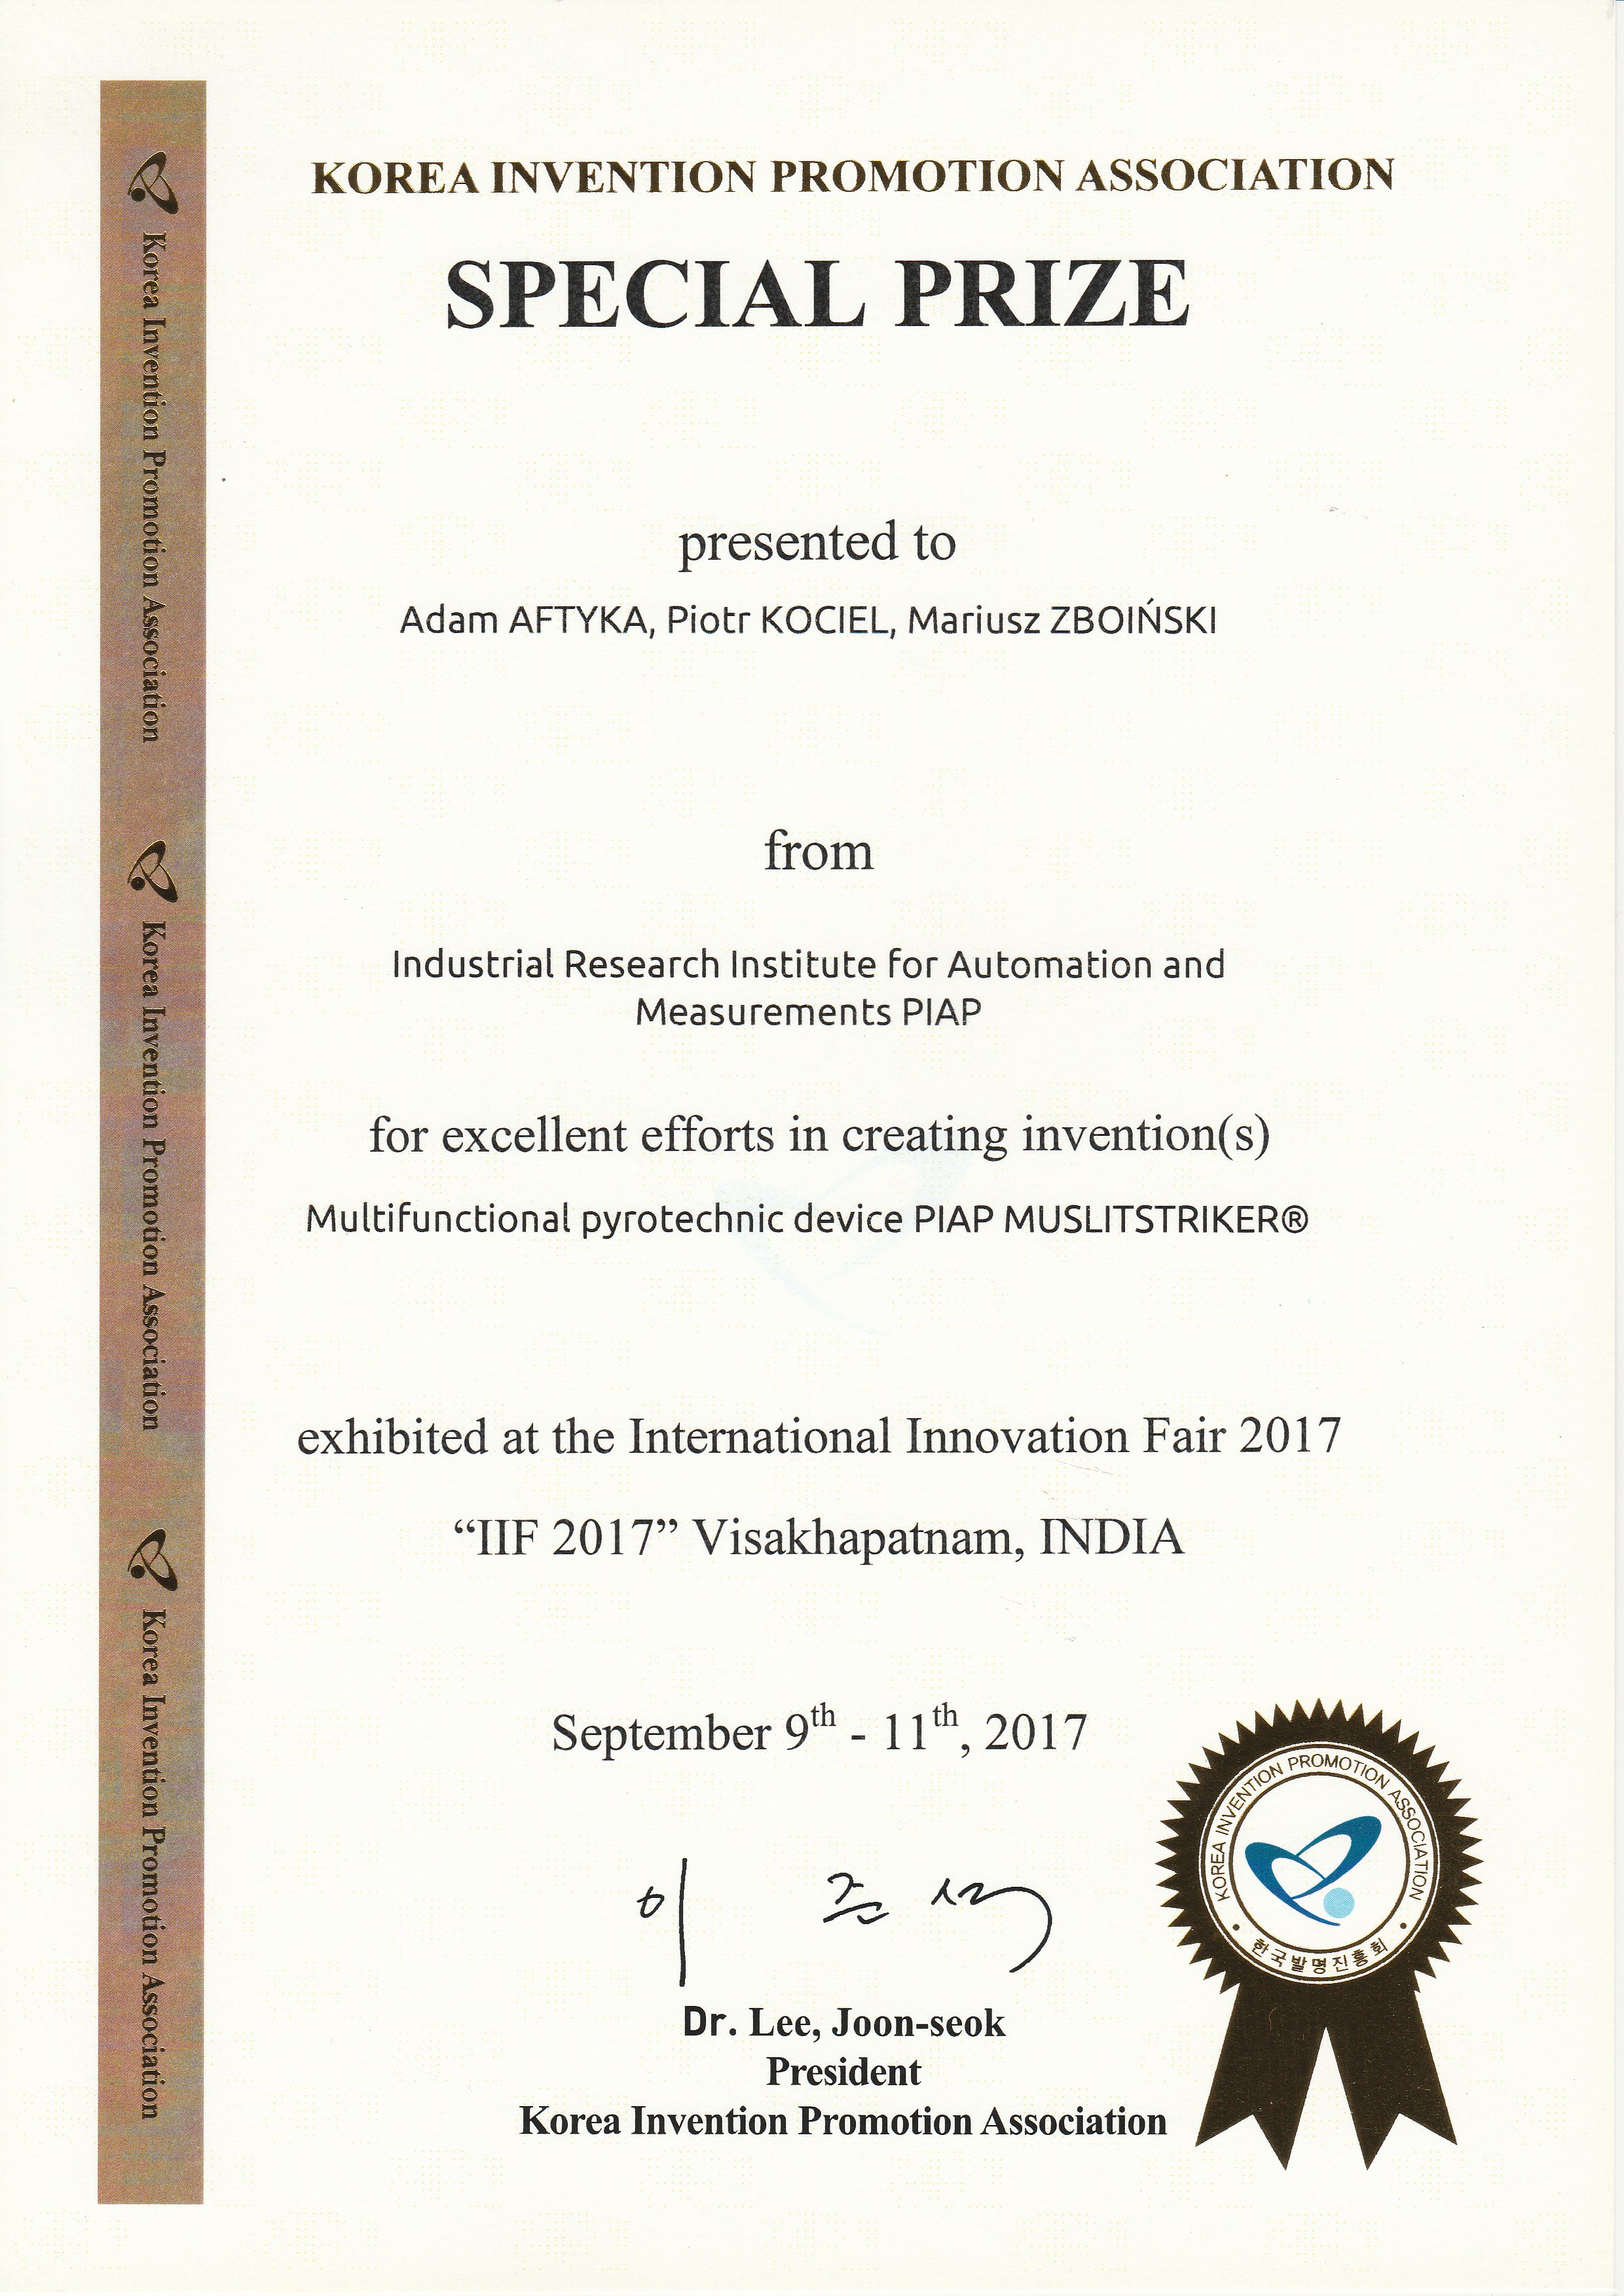 International Innovation Fair 2017